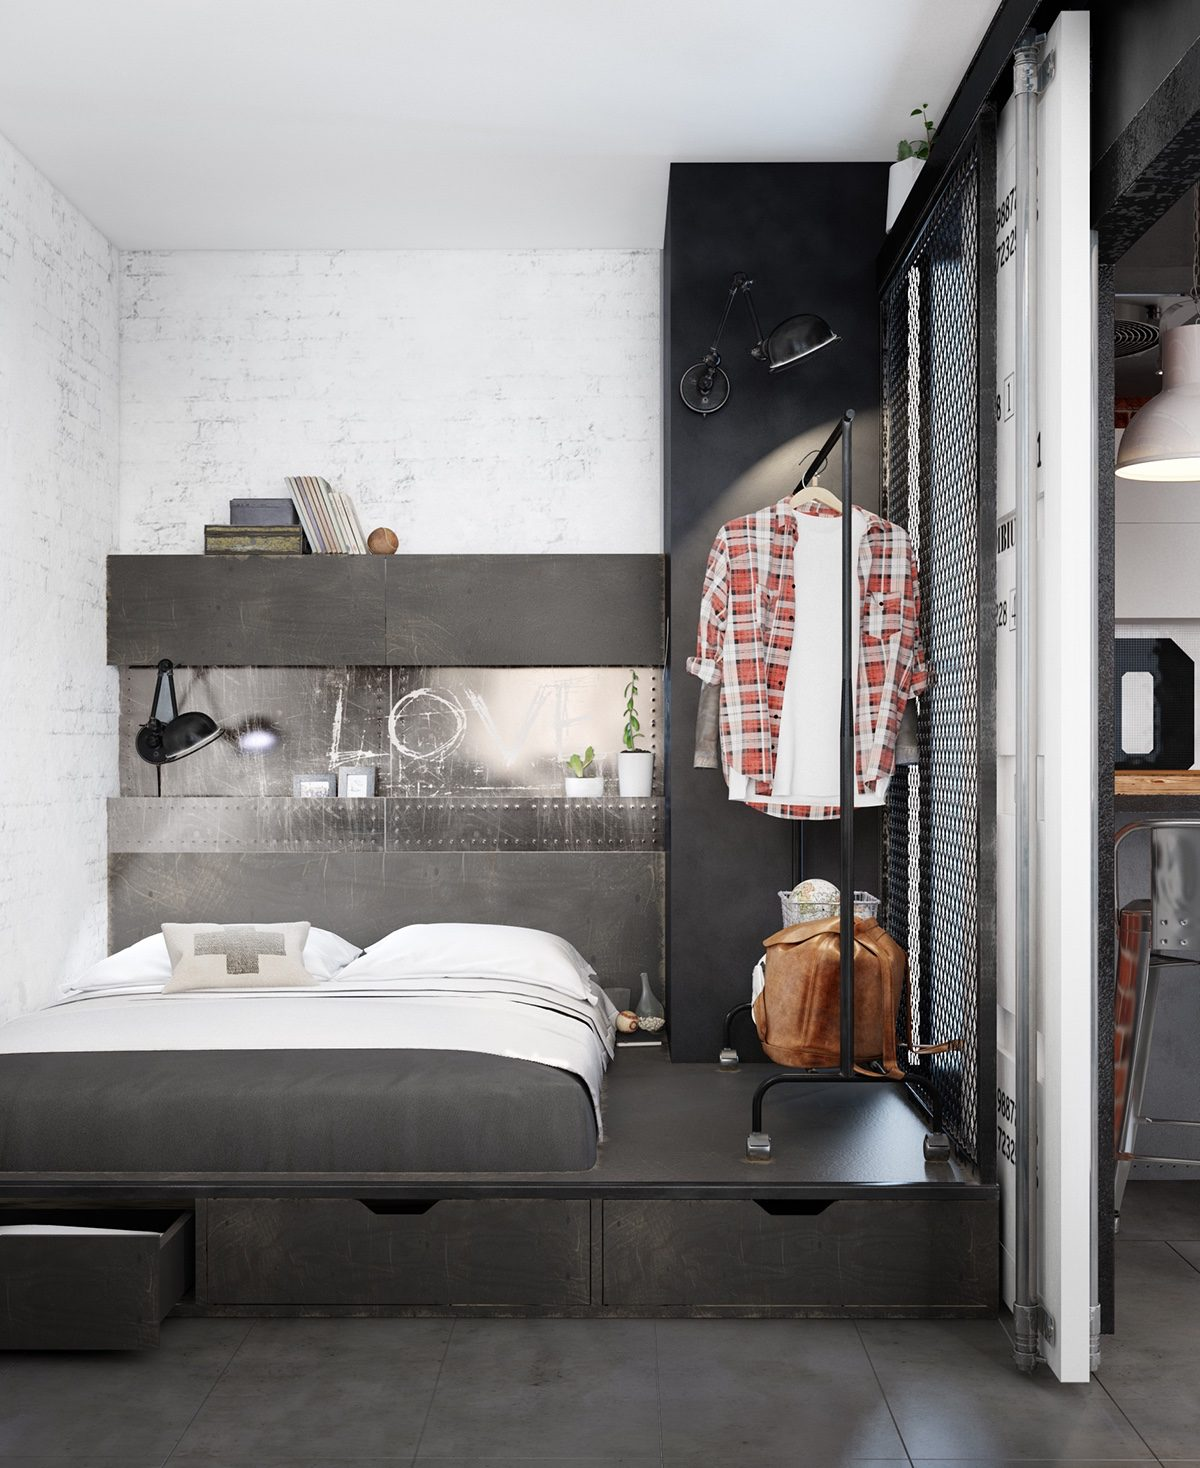 Bachelor Bedroom Industrial Style 3 Modern Bachelor Apartment Design